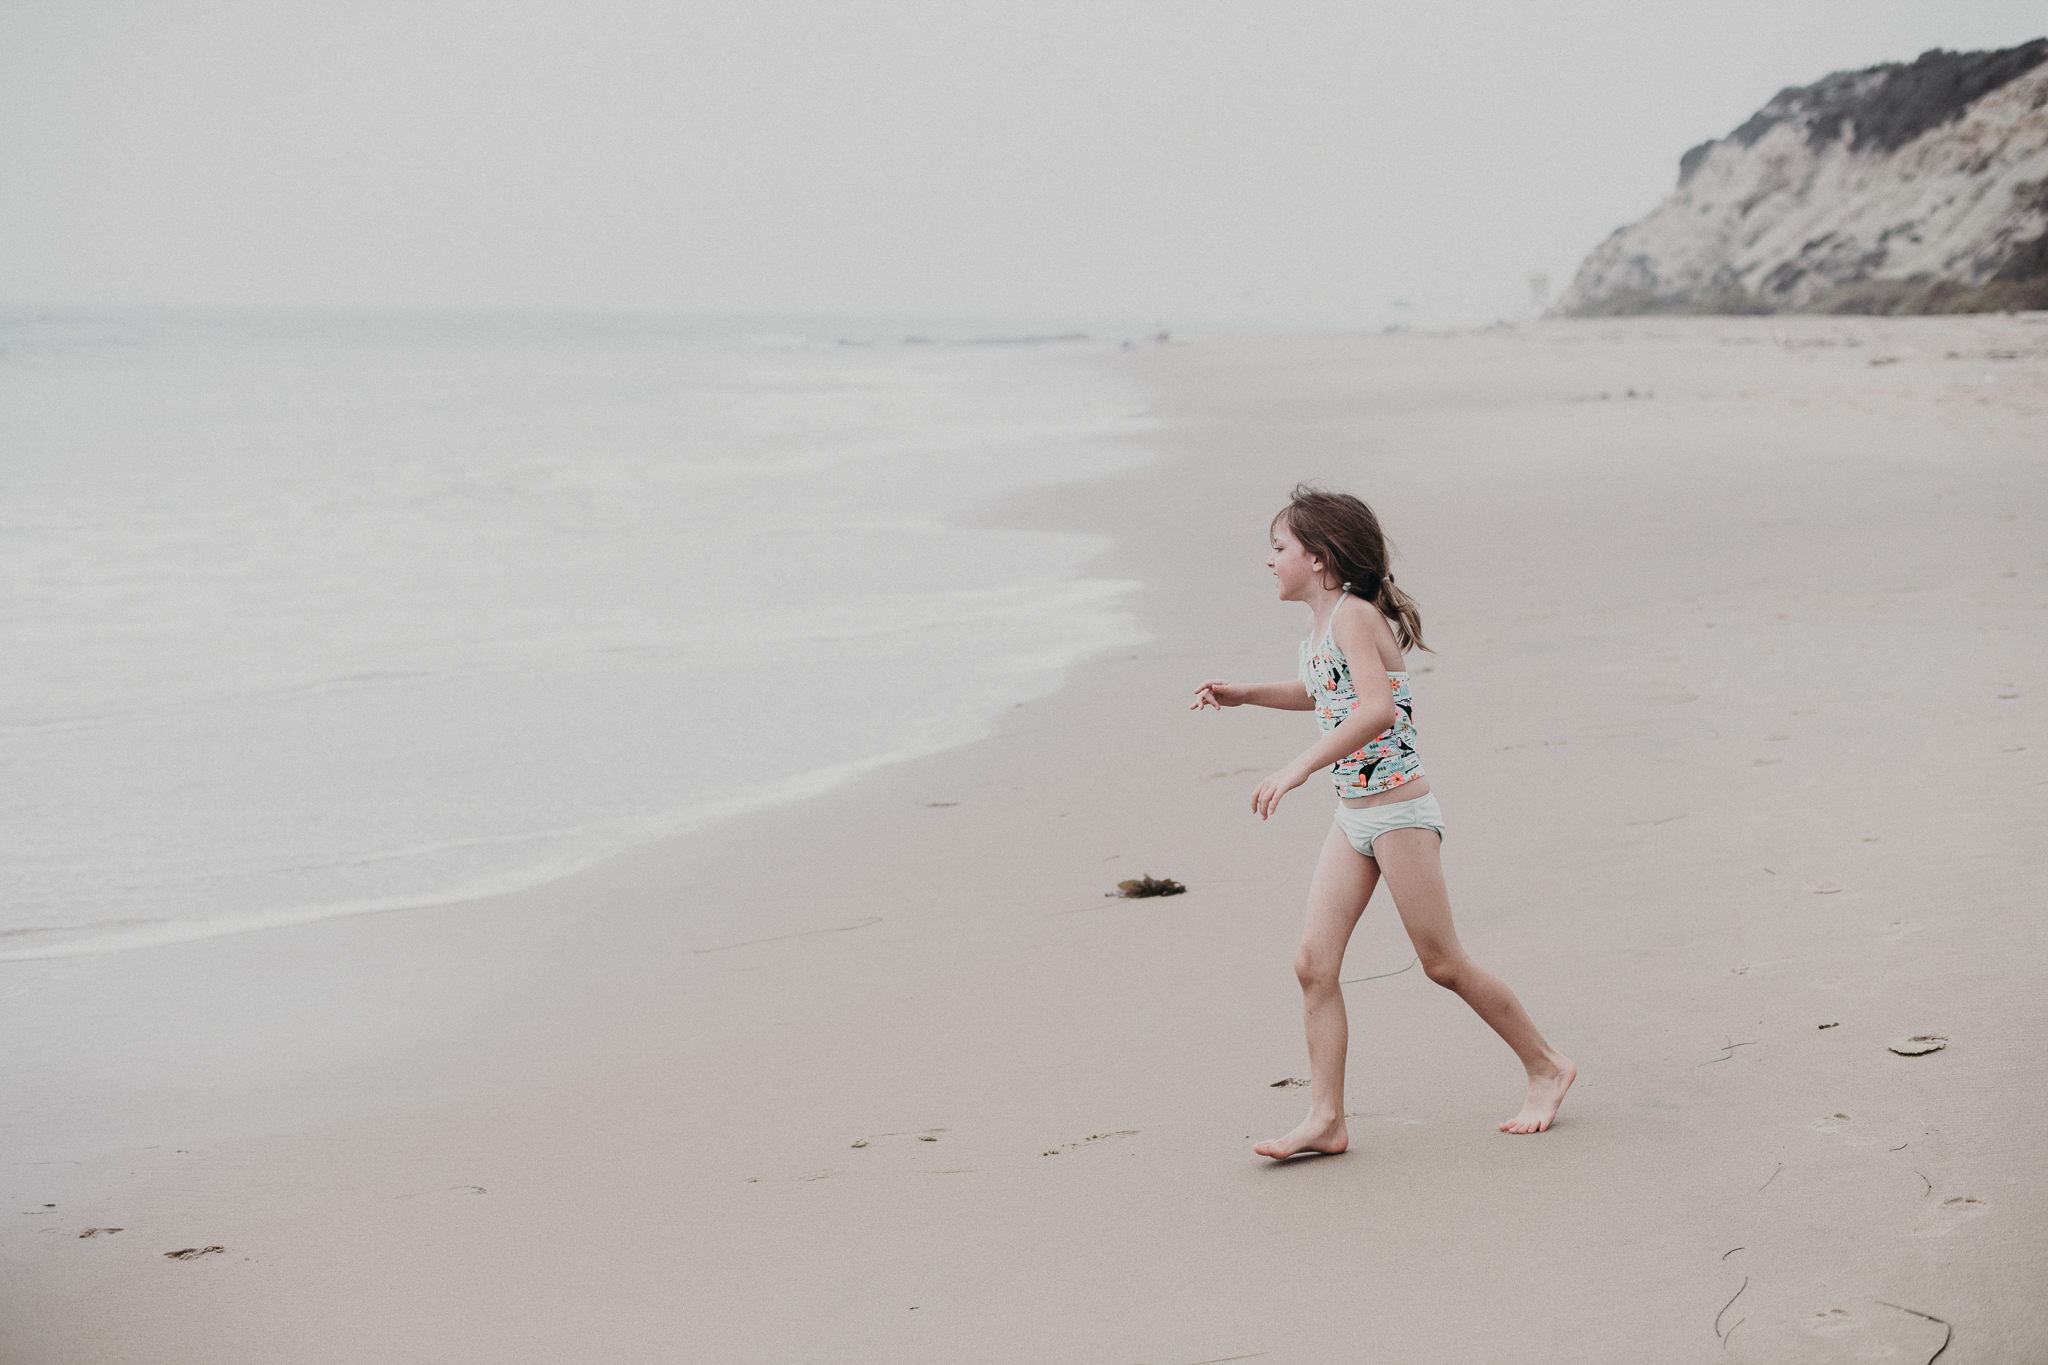 Little girl running towards the ocean in California